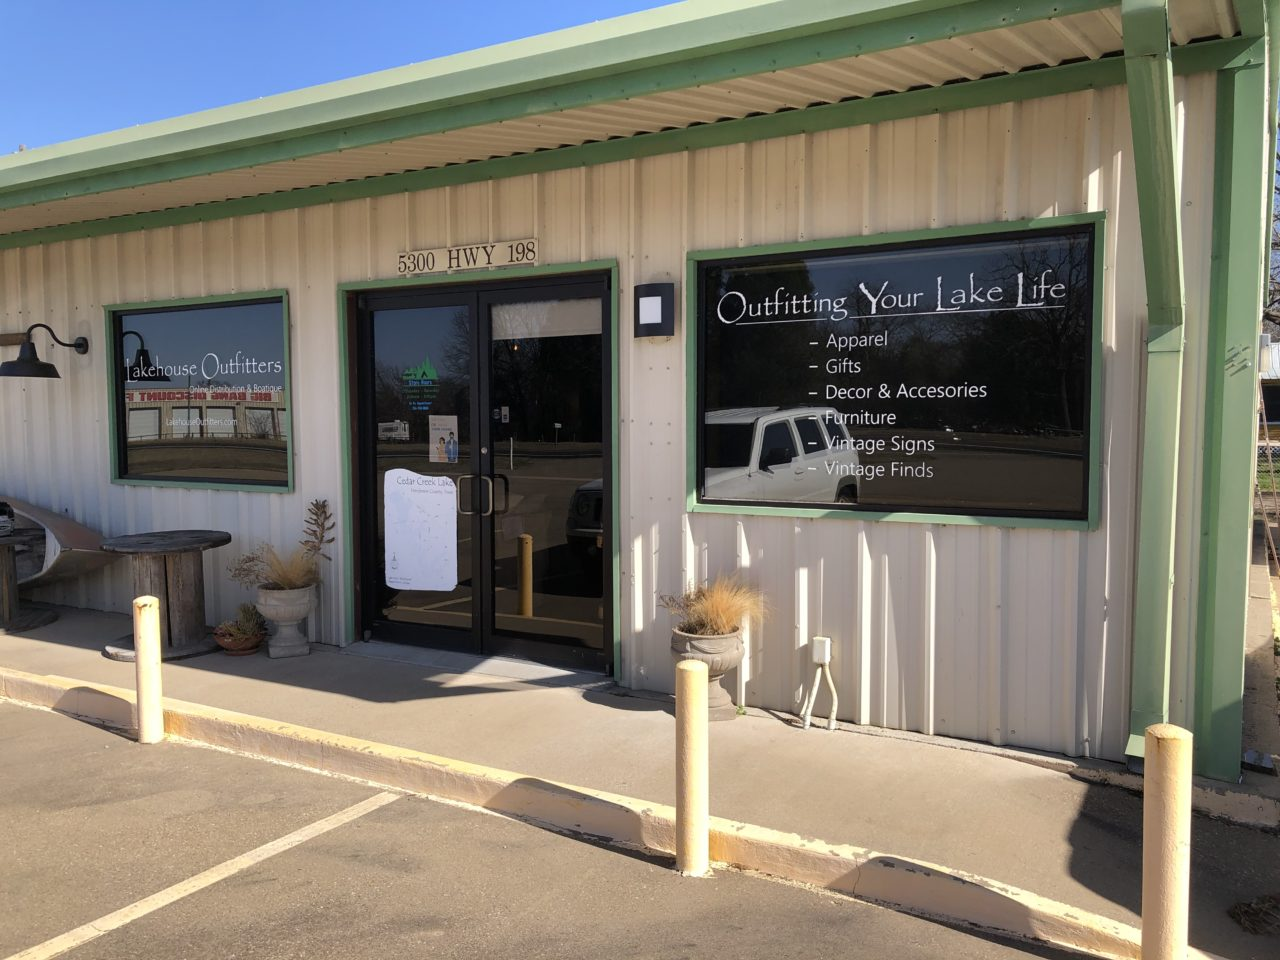 Lakehouse Outfitters 3 6 of 12 CedarCreekLake.Online